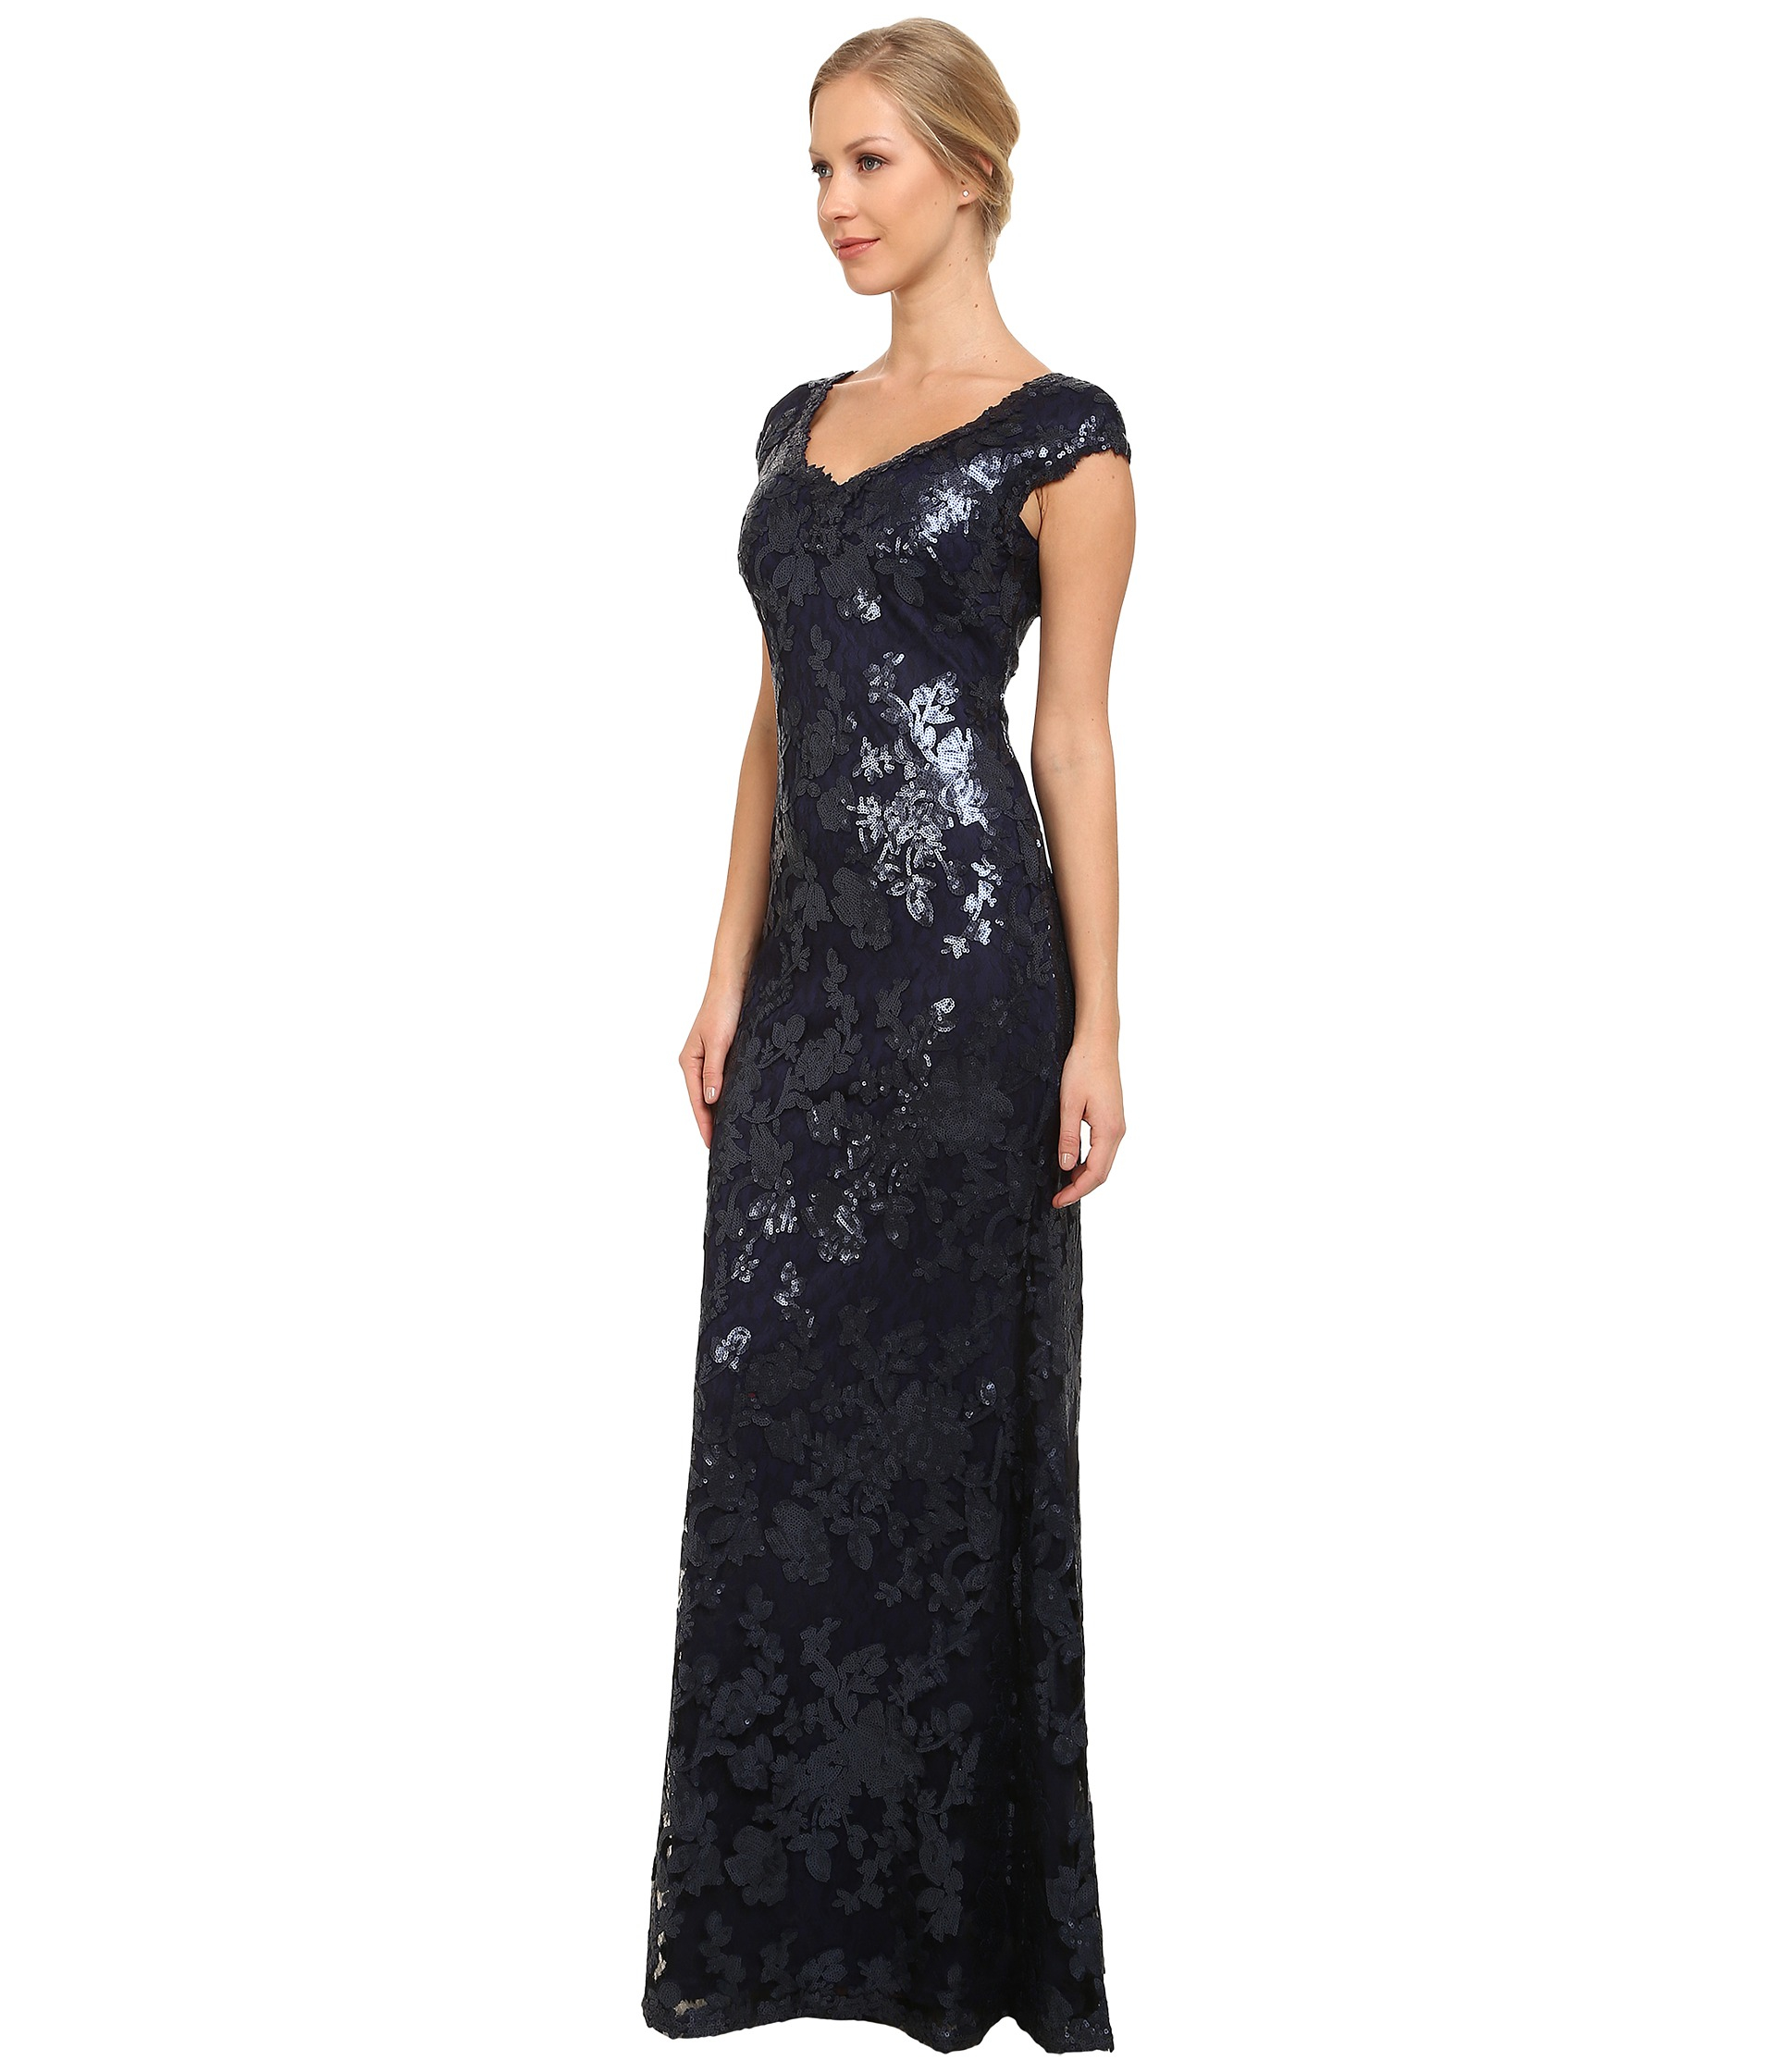 Lyst - Adrianna Papell Sequin Lace Cap Sleeve Gown in Blue